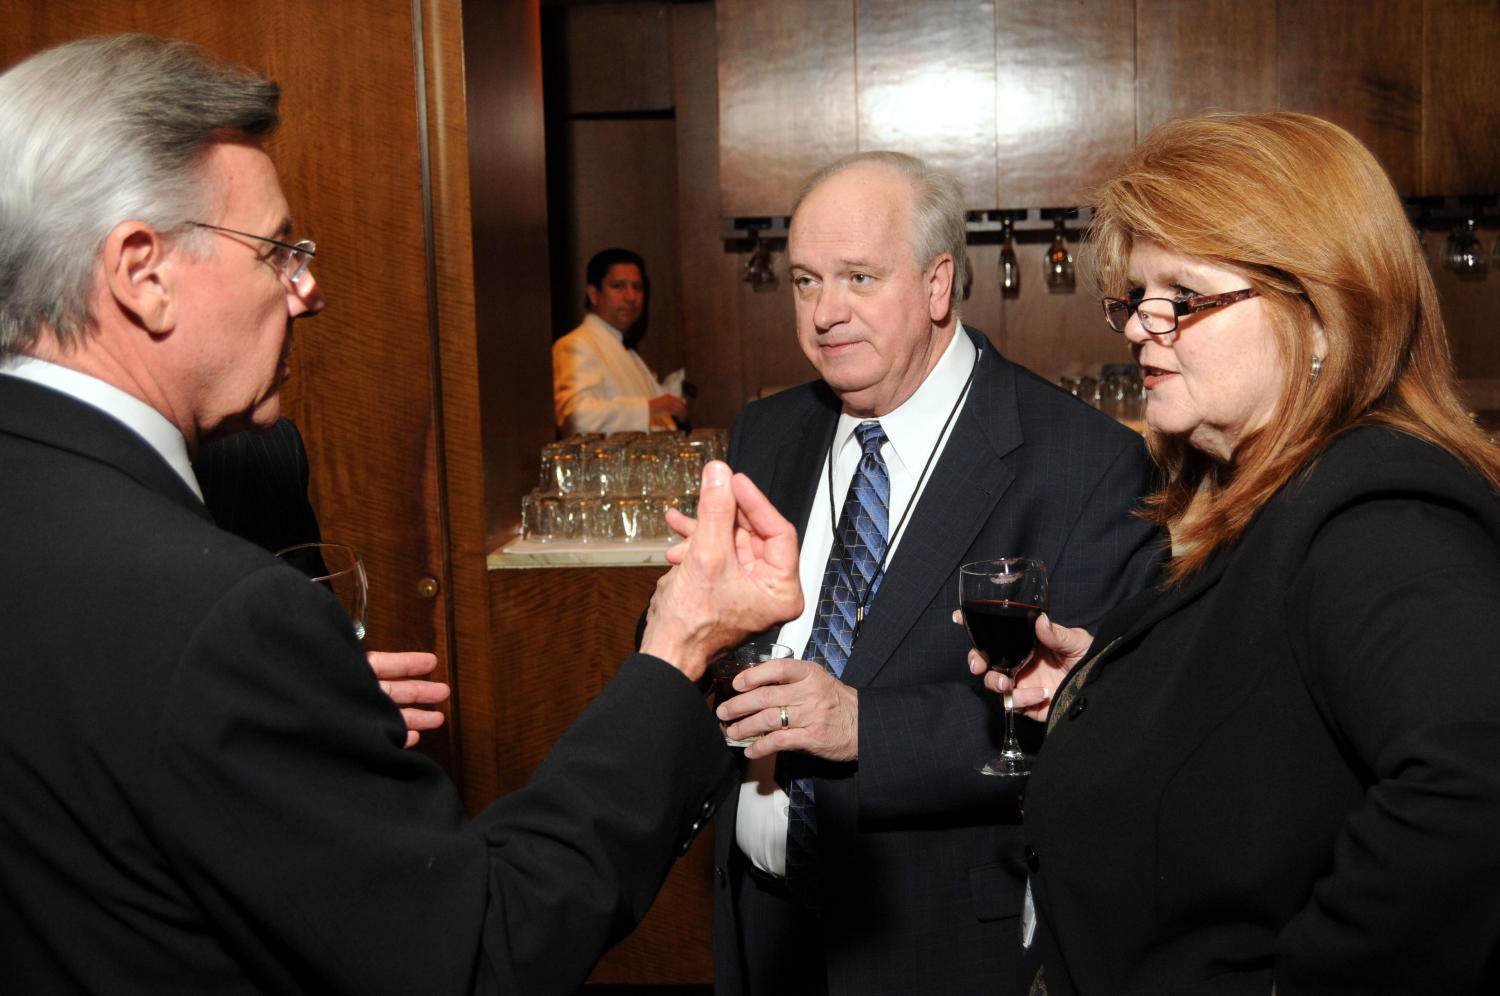 [Guests drinking refreshments at TDNA reception], Photograph of three unidentified guests conversing with one another and drinking refreshments during a reception at the 2010 Texas Daily Newspaper Association annual meeting held in Houston, Texas.,